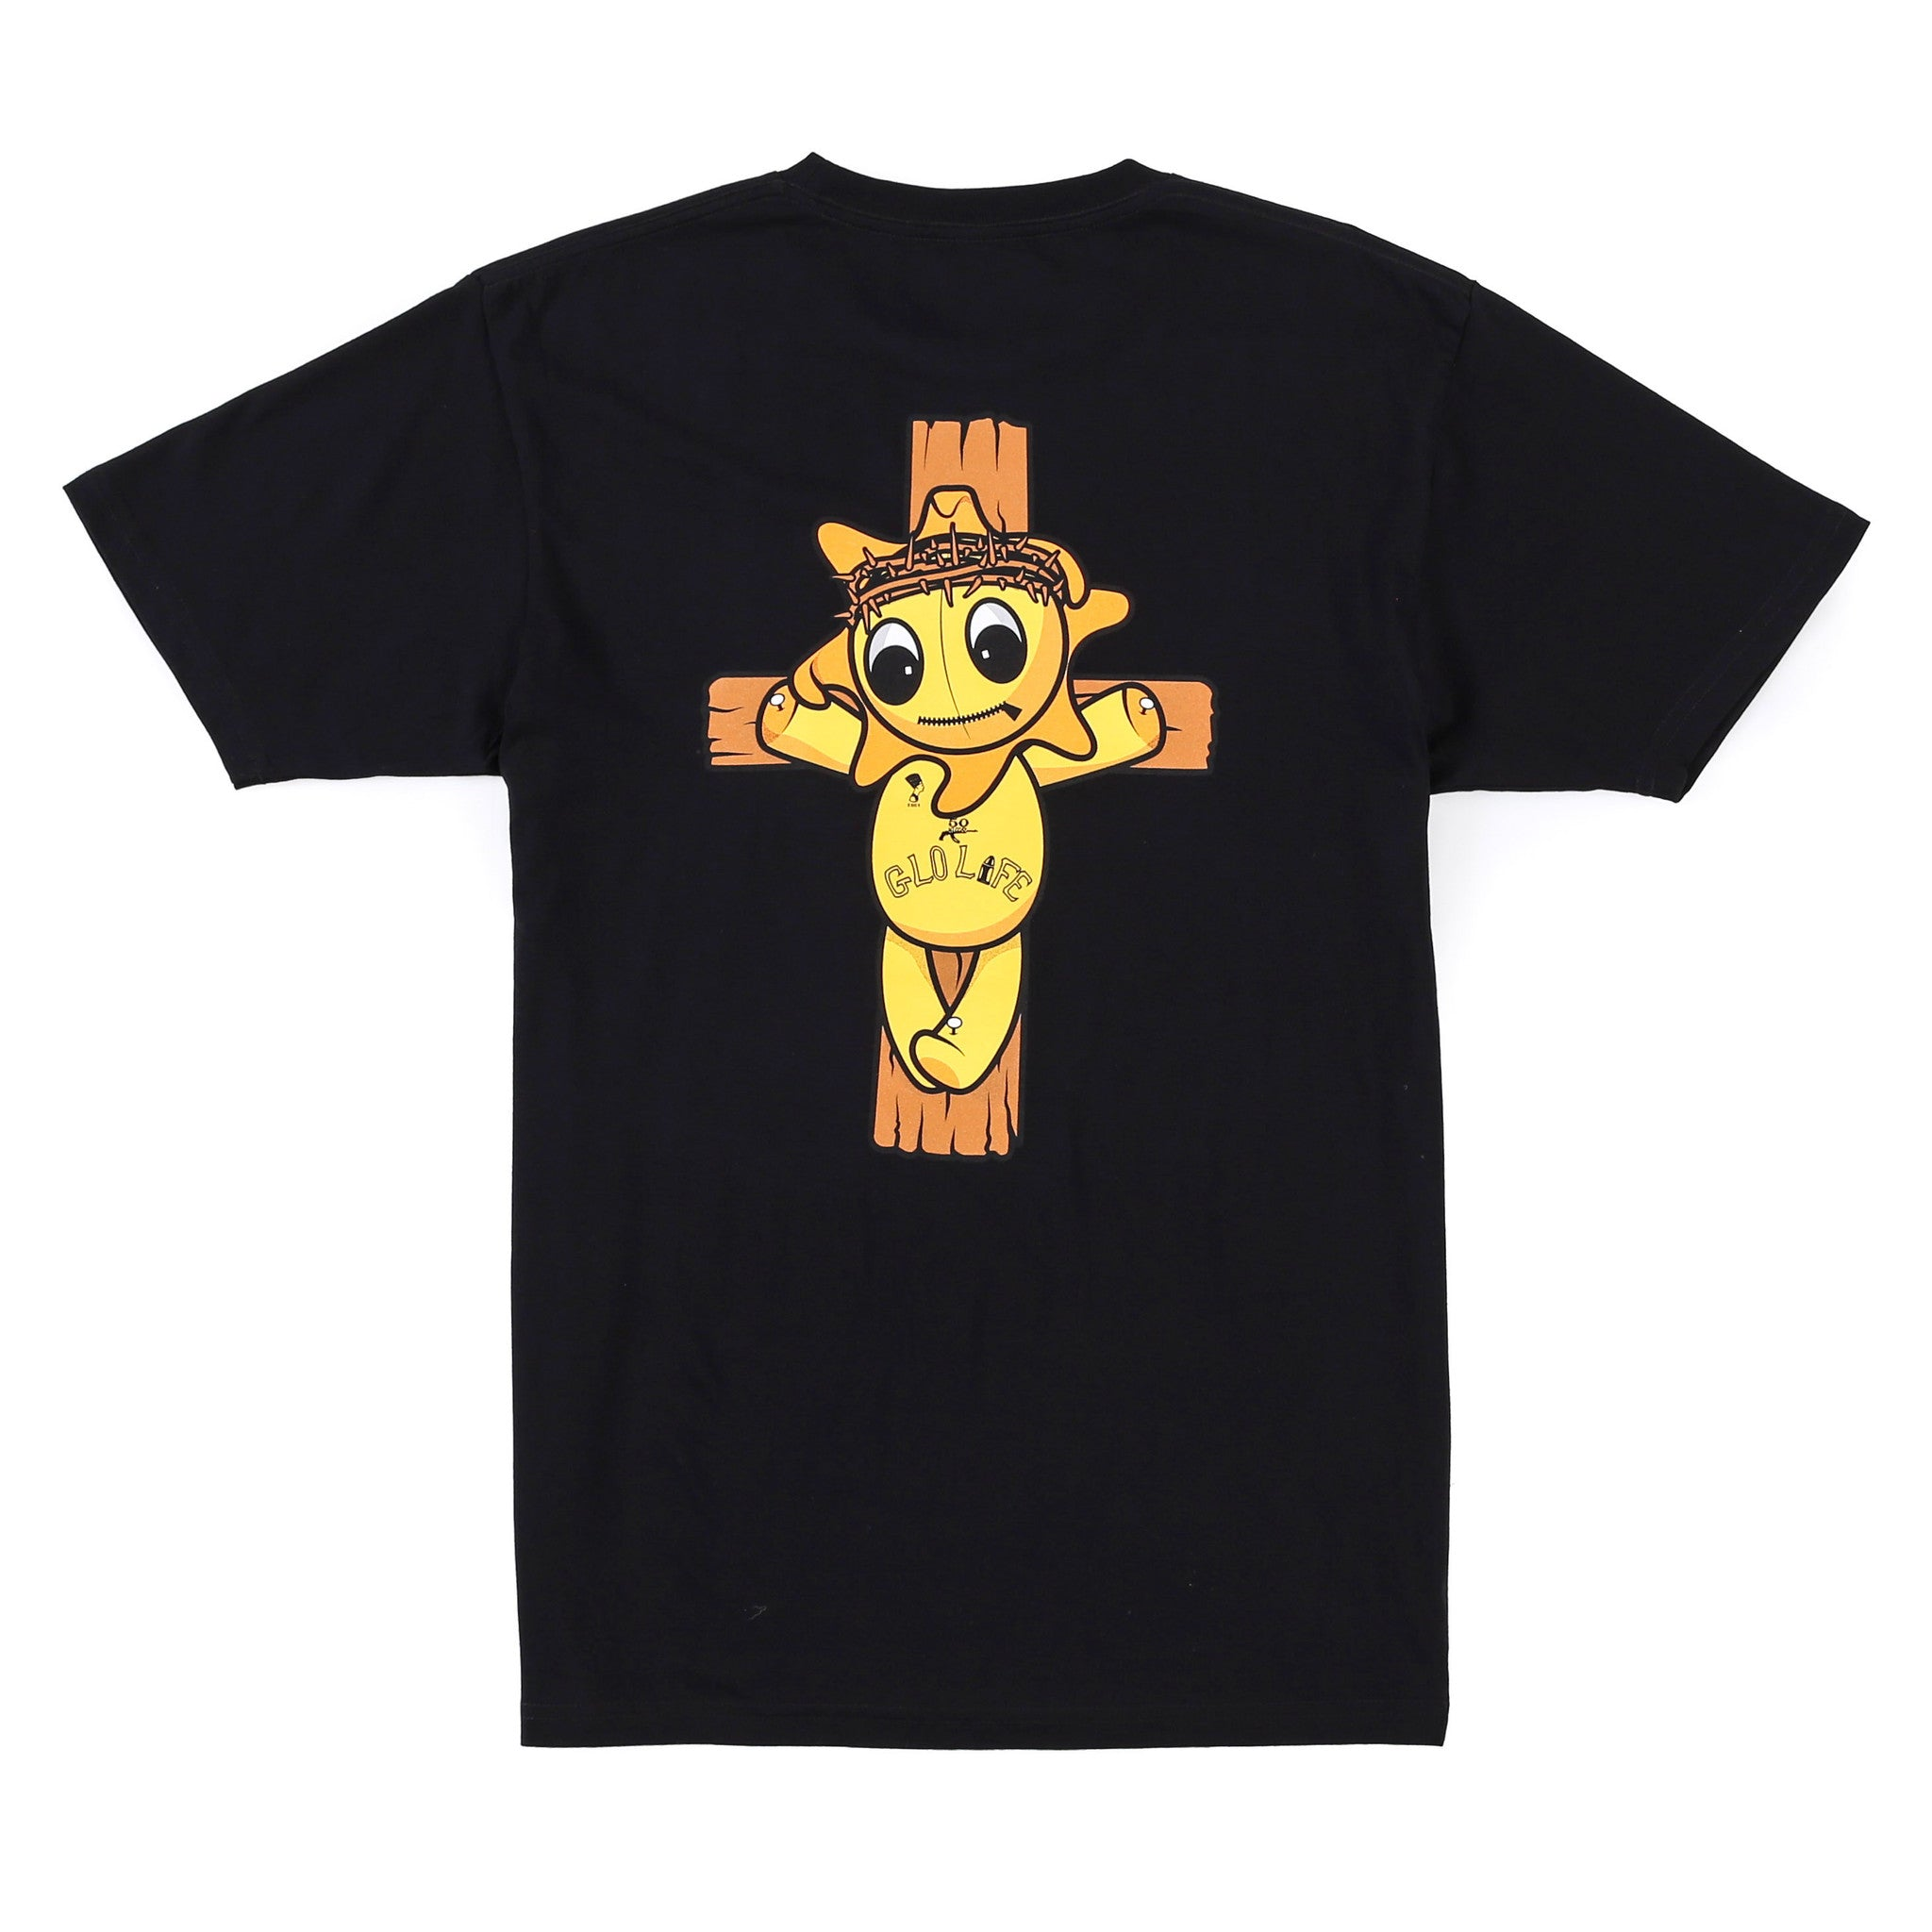 Glo Religion Cross Tee (Black)